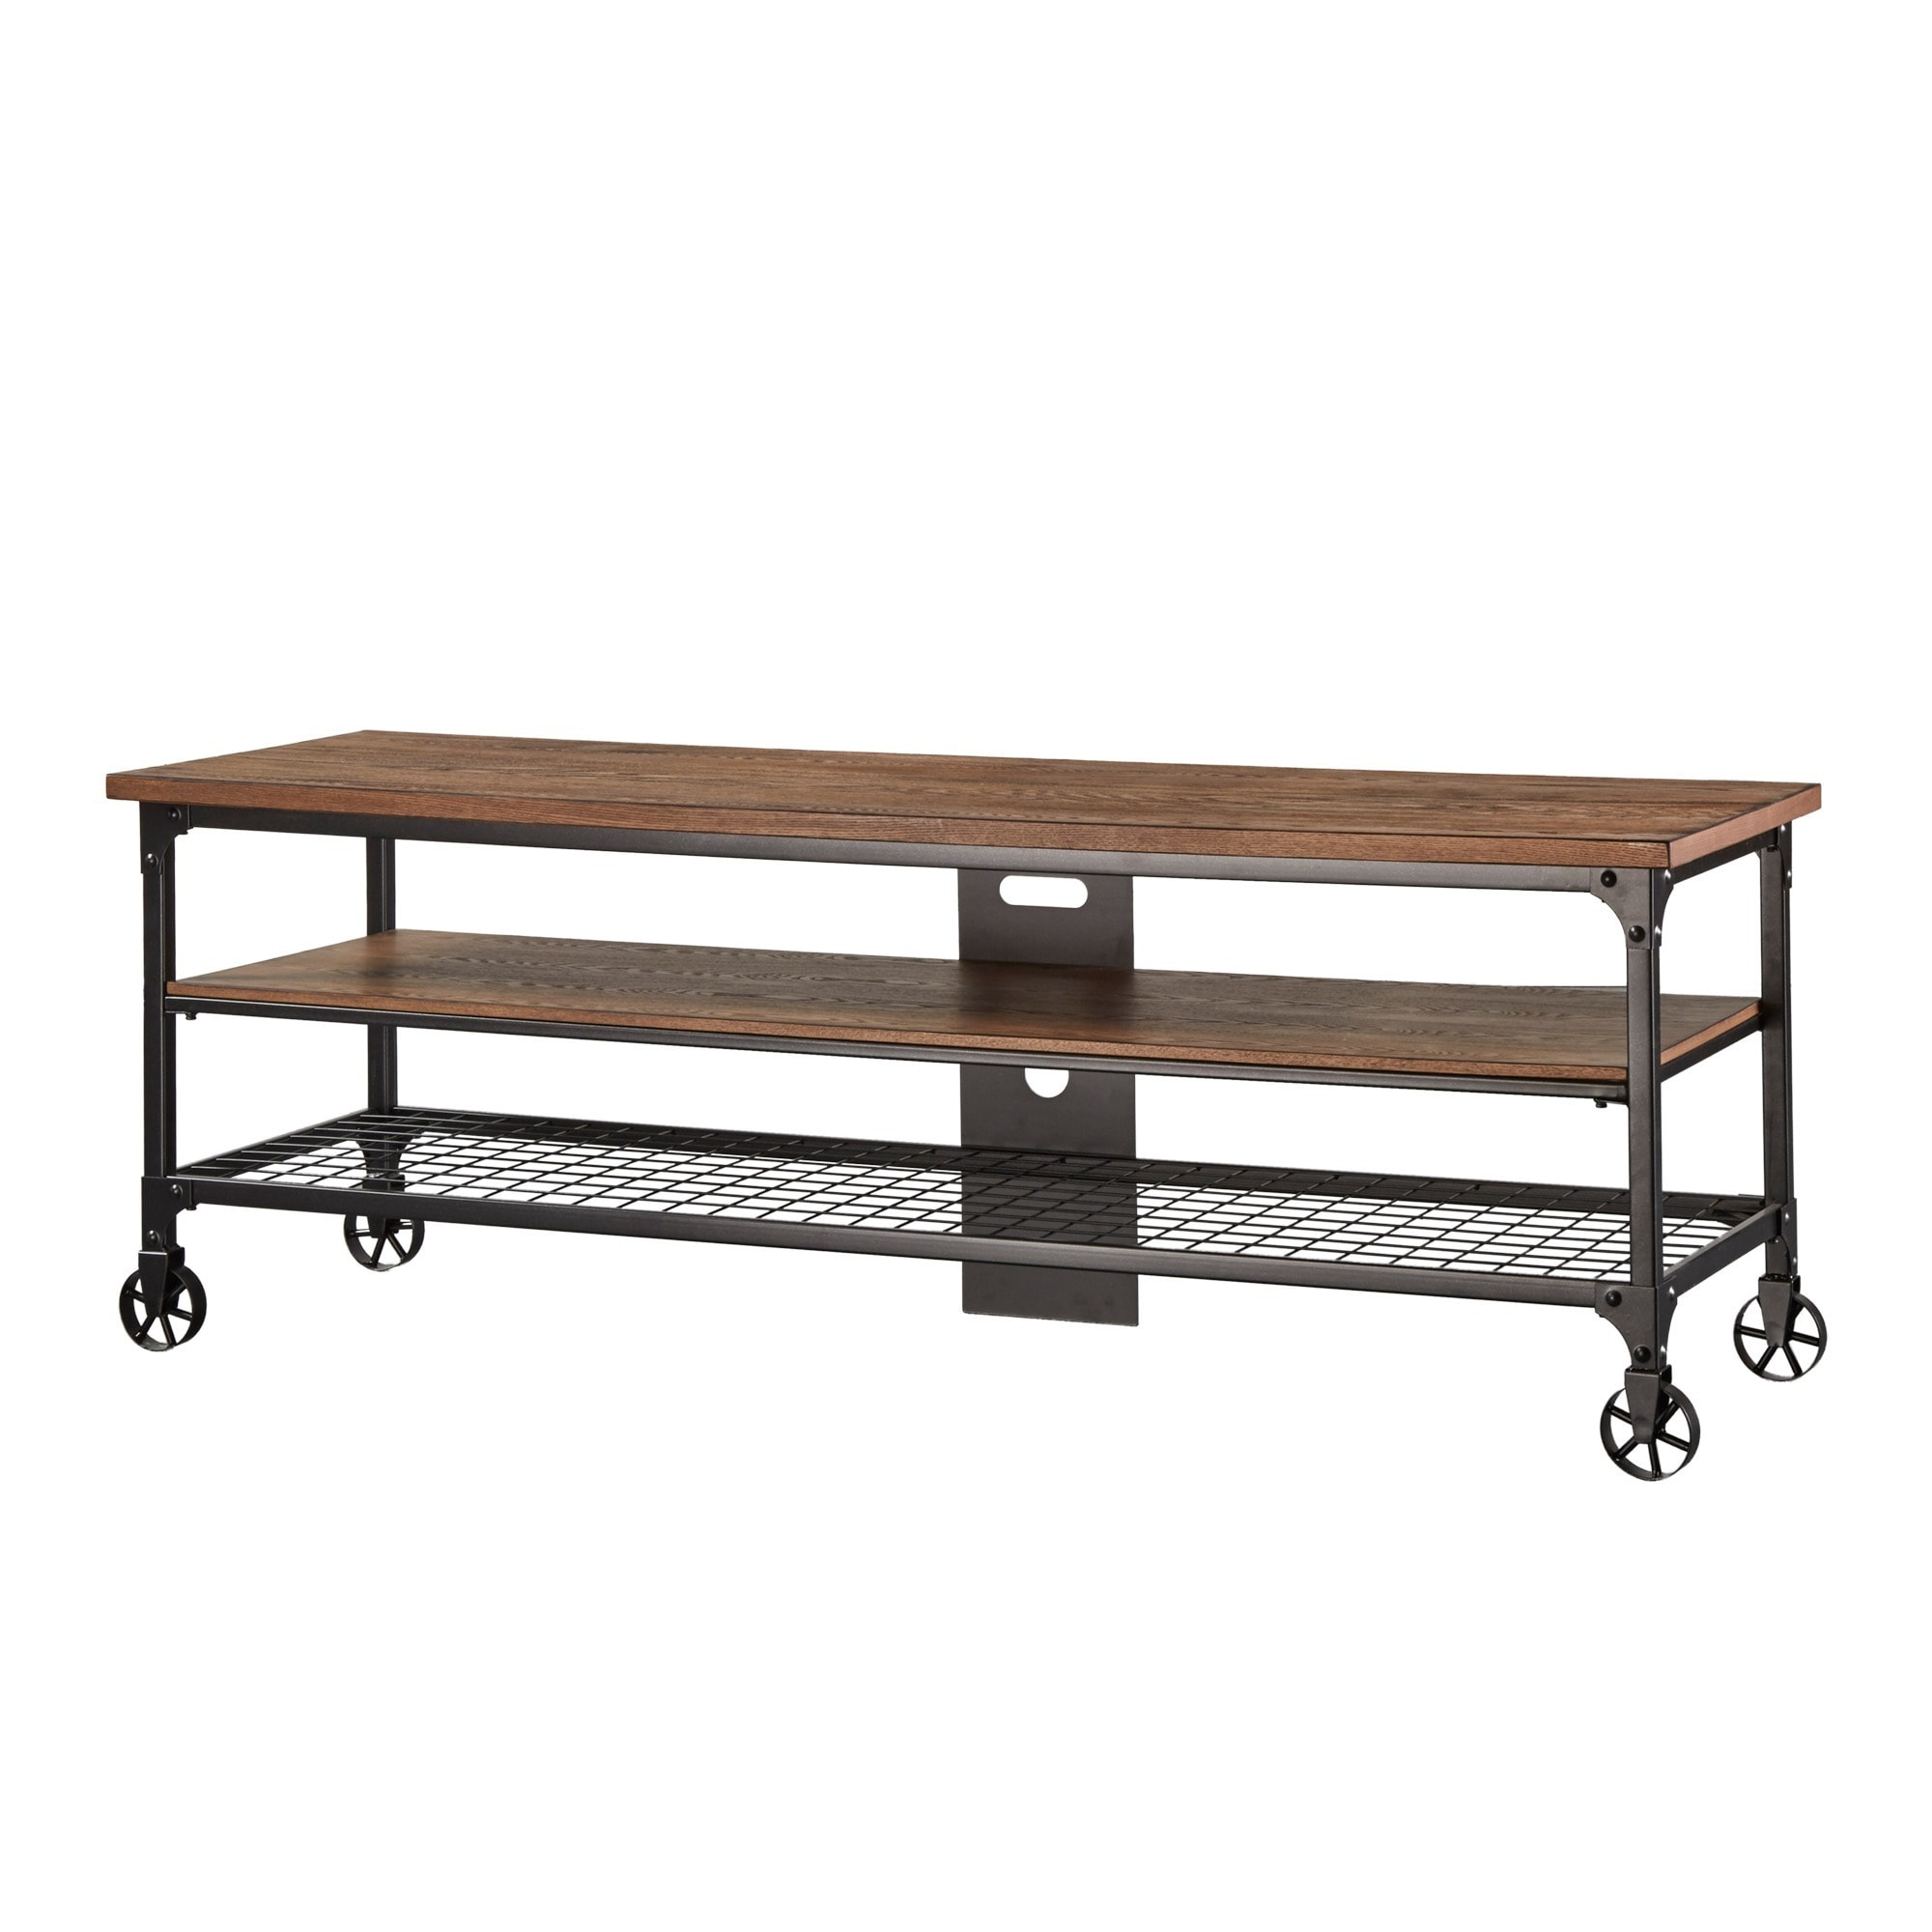 Nelson Industrial Modern Rustic Console Sofa Table TV Stand By INSPIRE Q  Classic   Free Shipping Today   Overstock.com   15867330